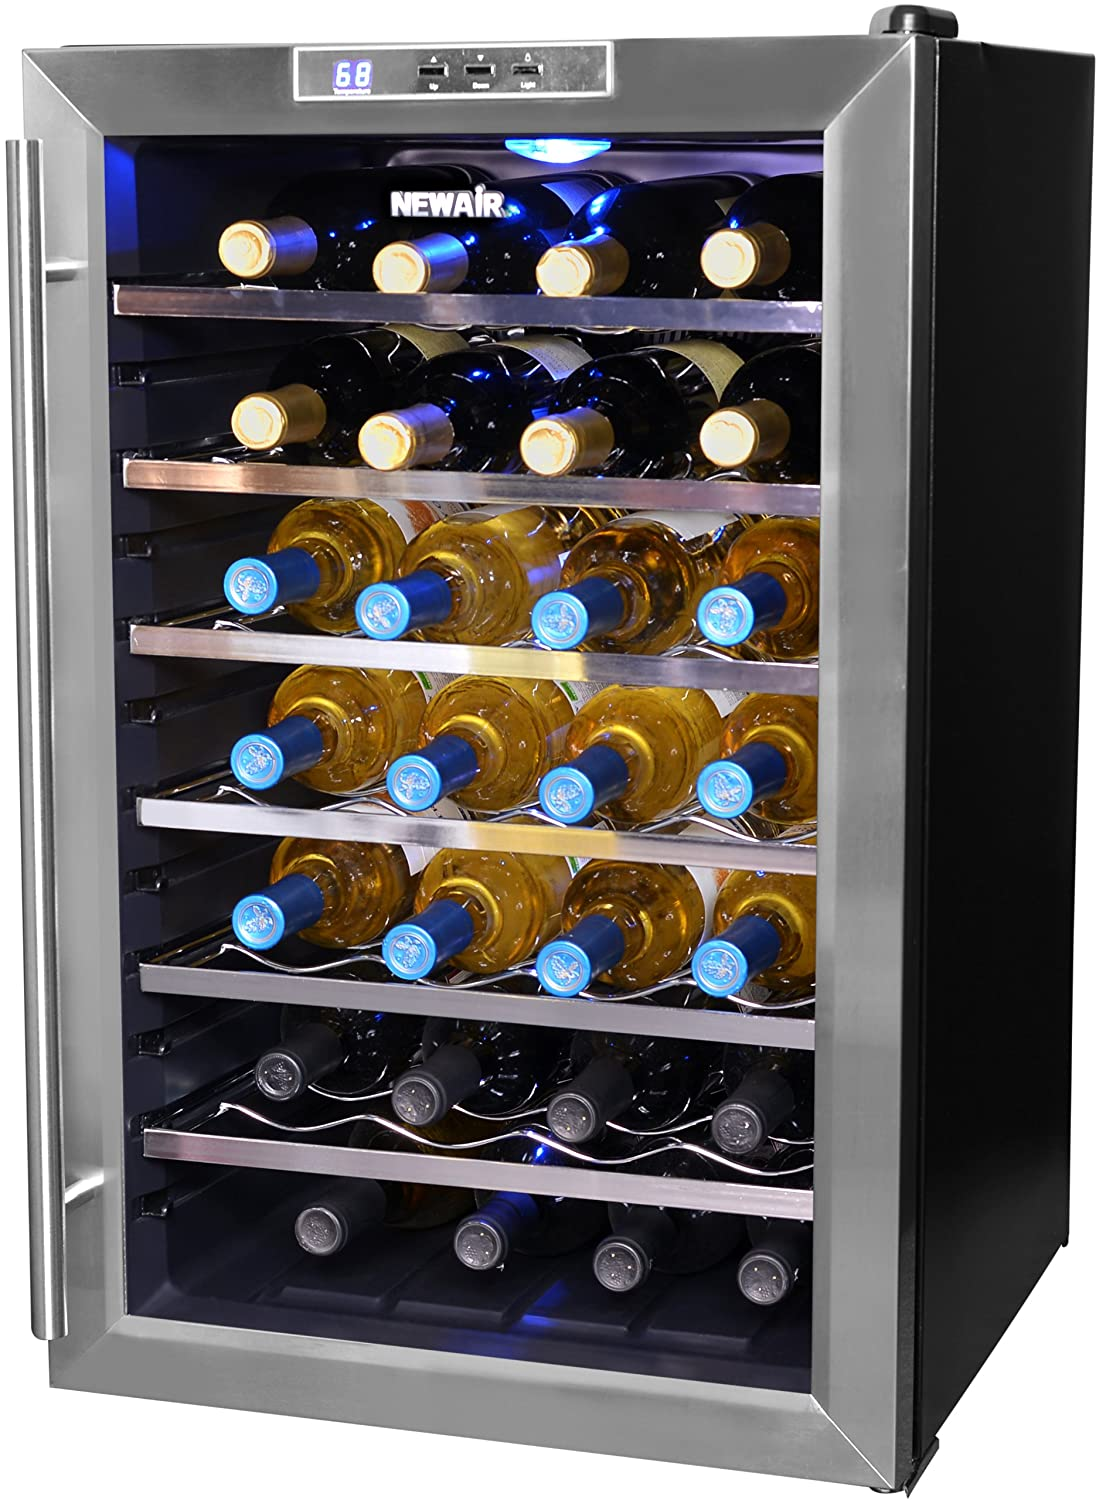 NewAir AW281E 28 Bottle Thermoelectric Wine Cooler, Black at Sears.com